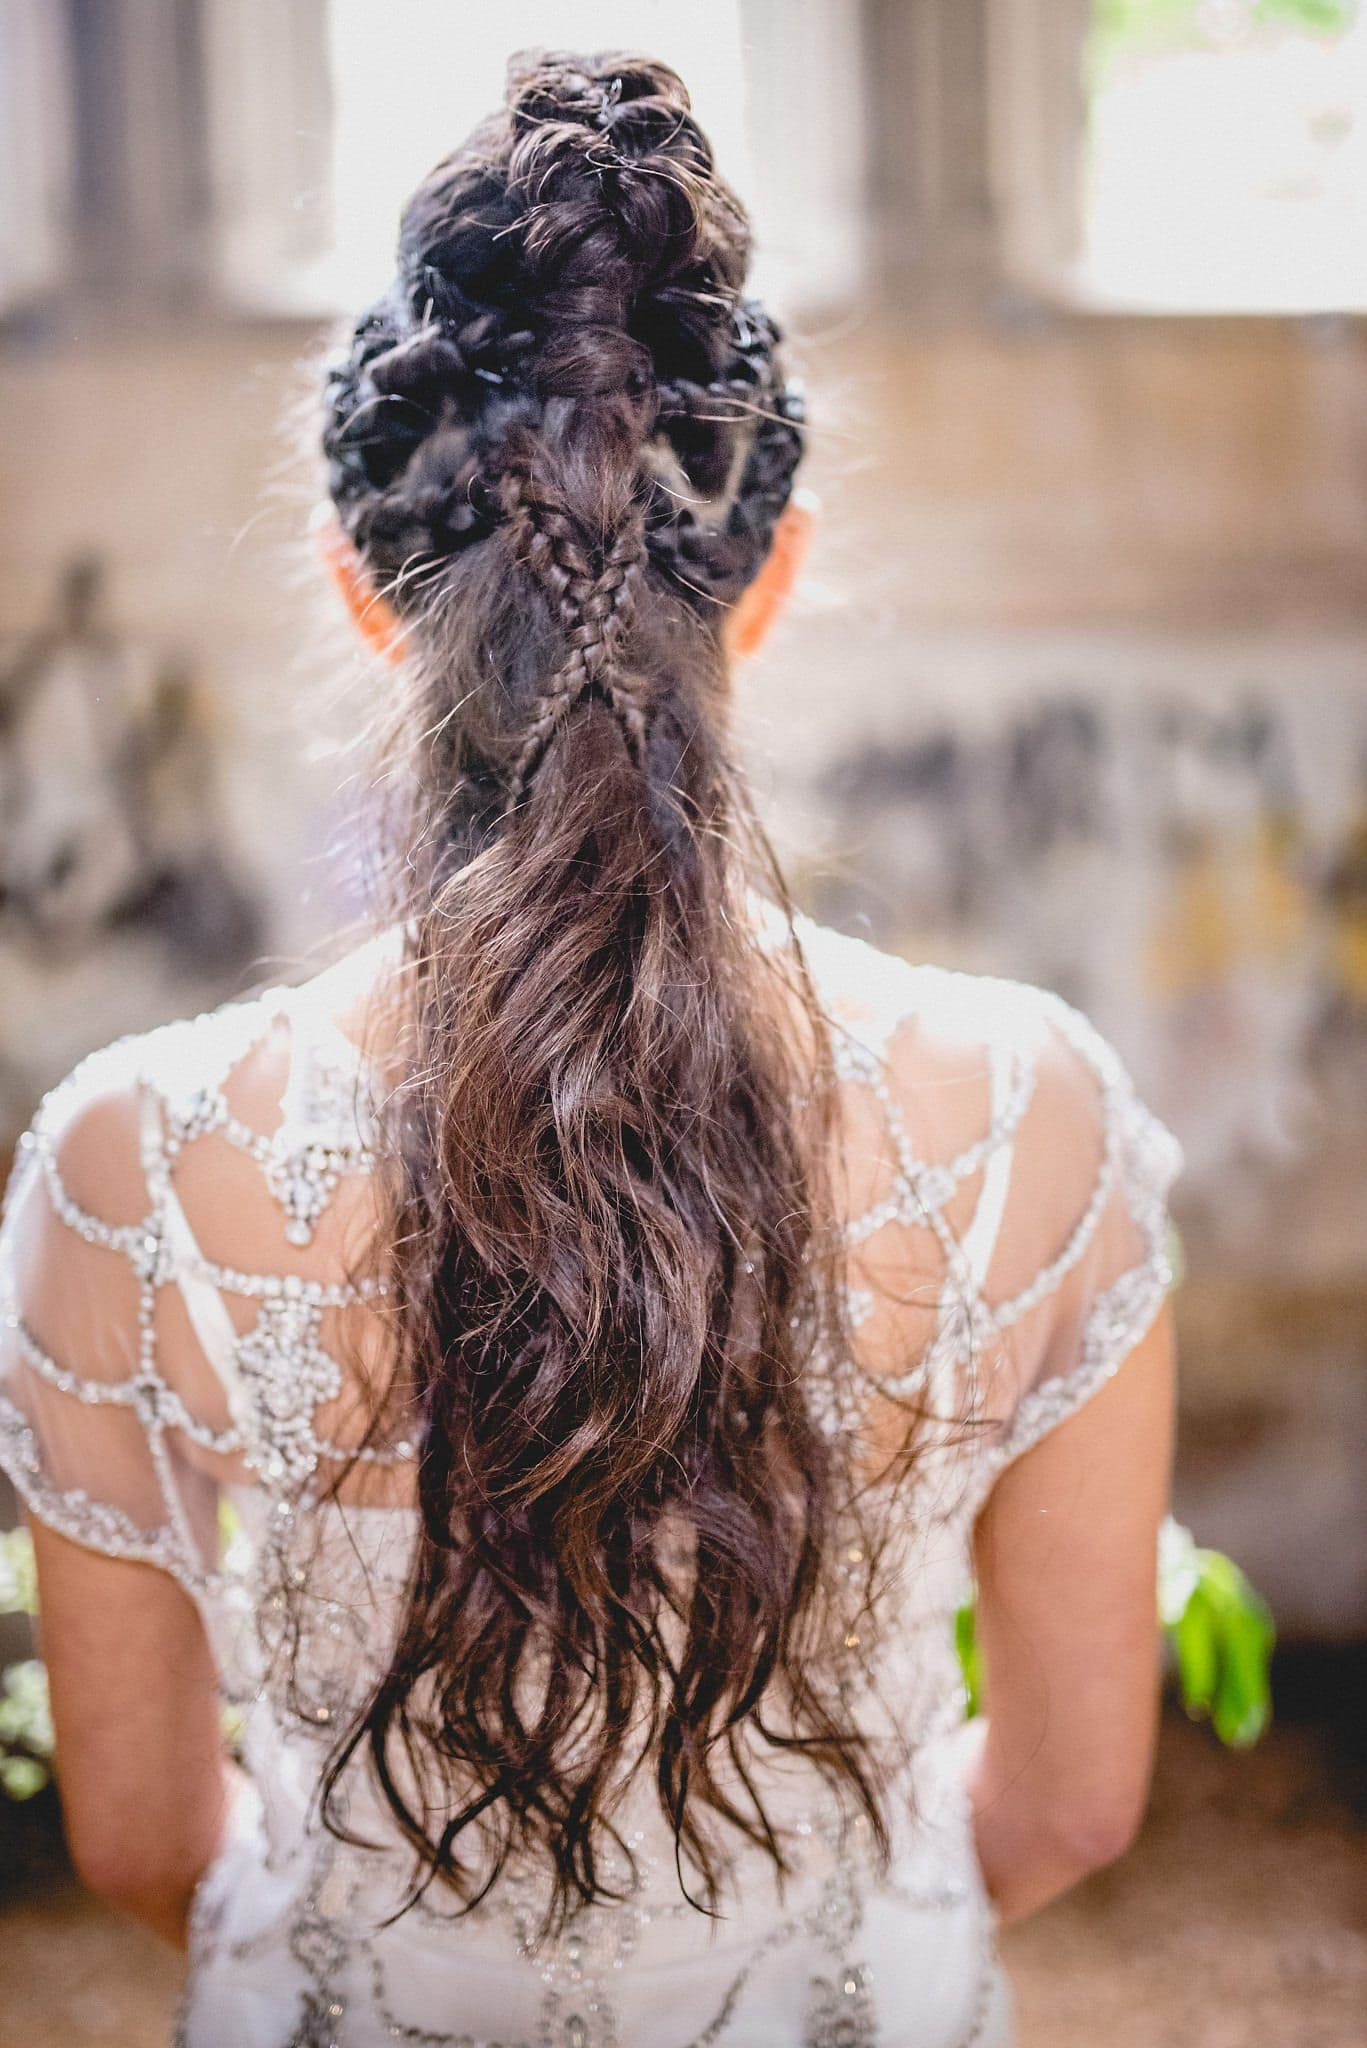 A shot from behind showing the amazing braided mohican hairstyle on our bridal model Rebecca